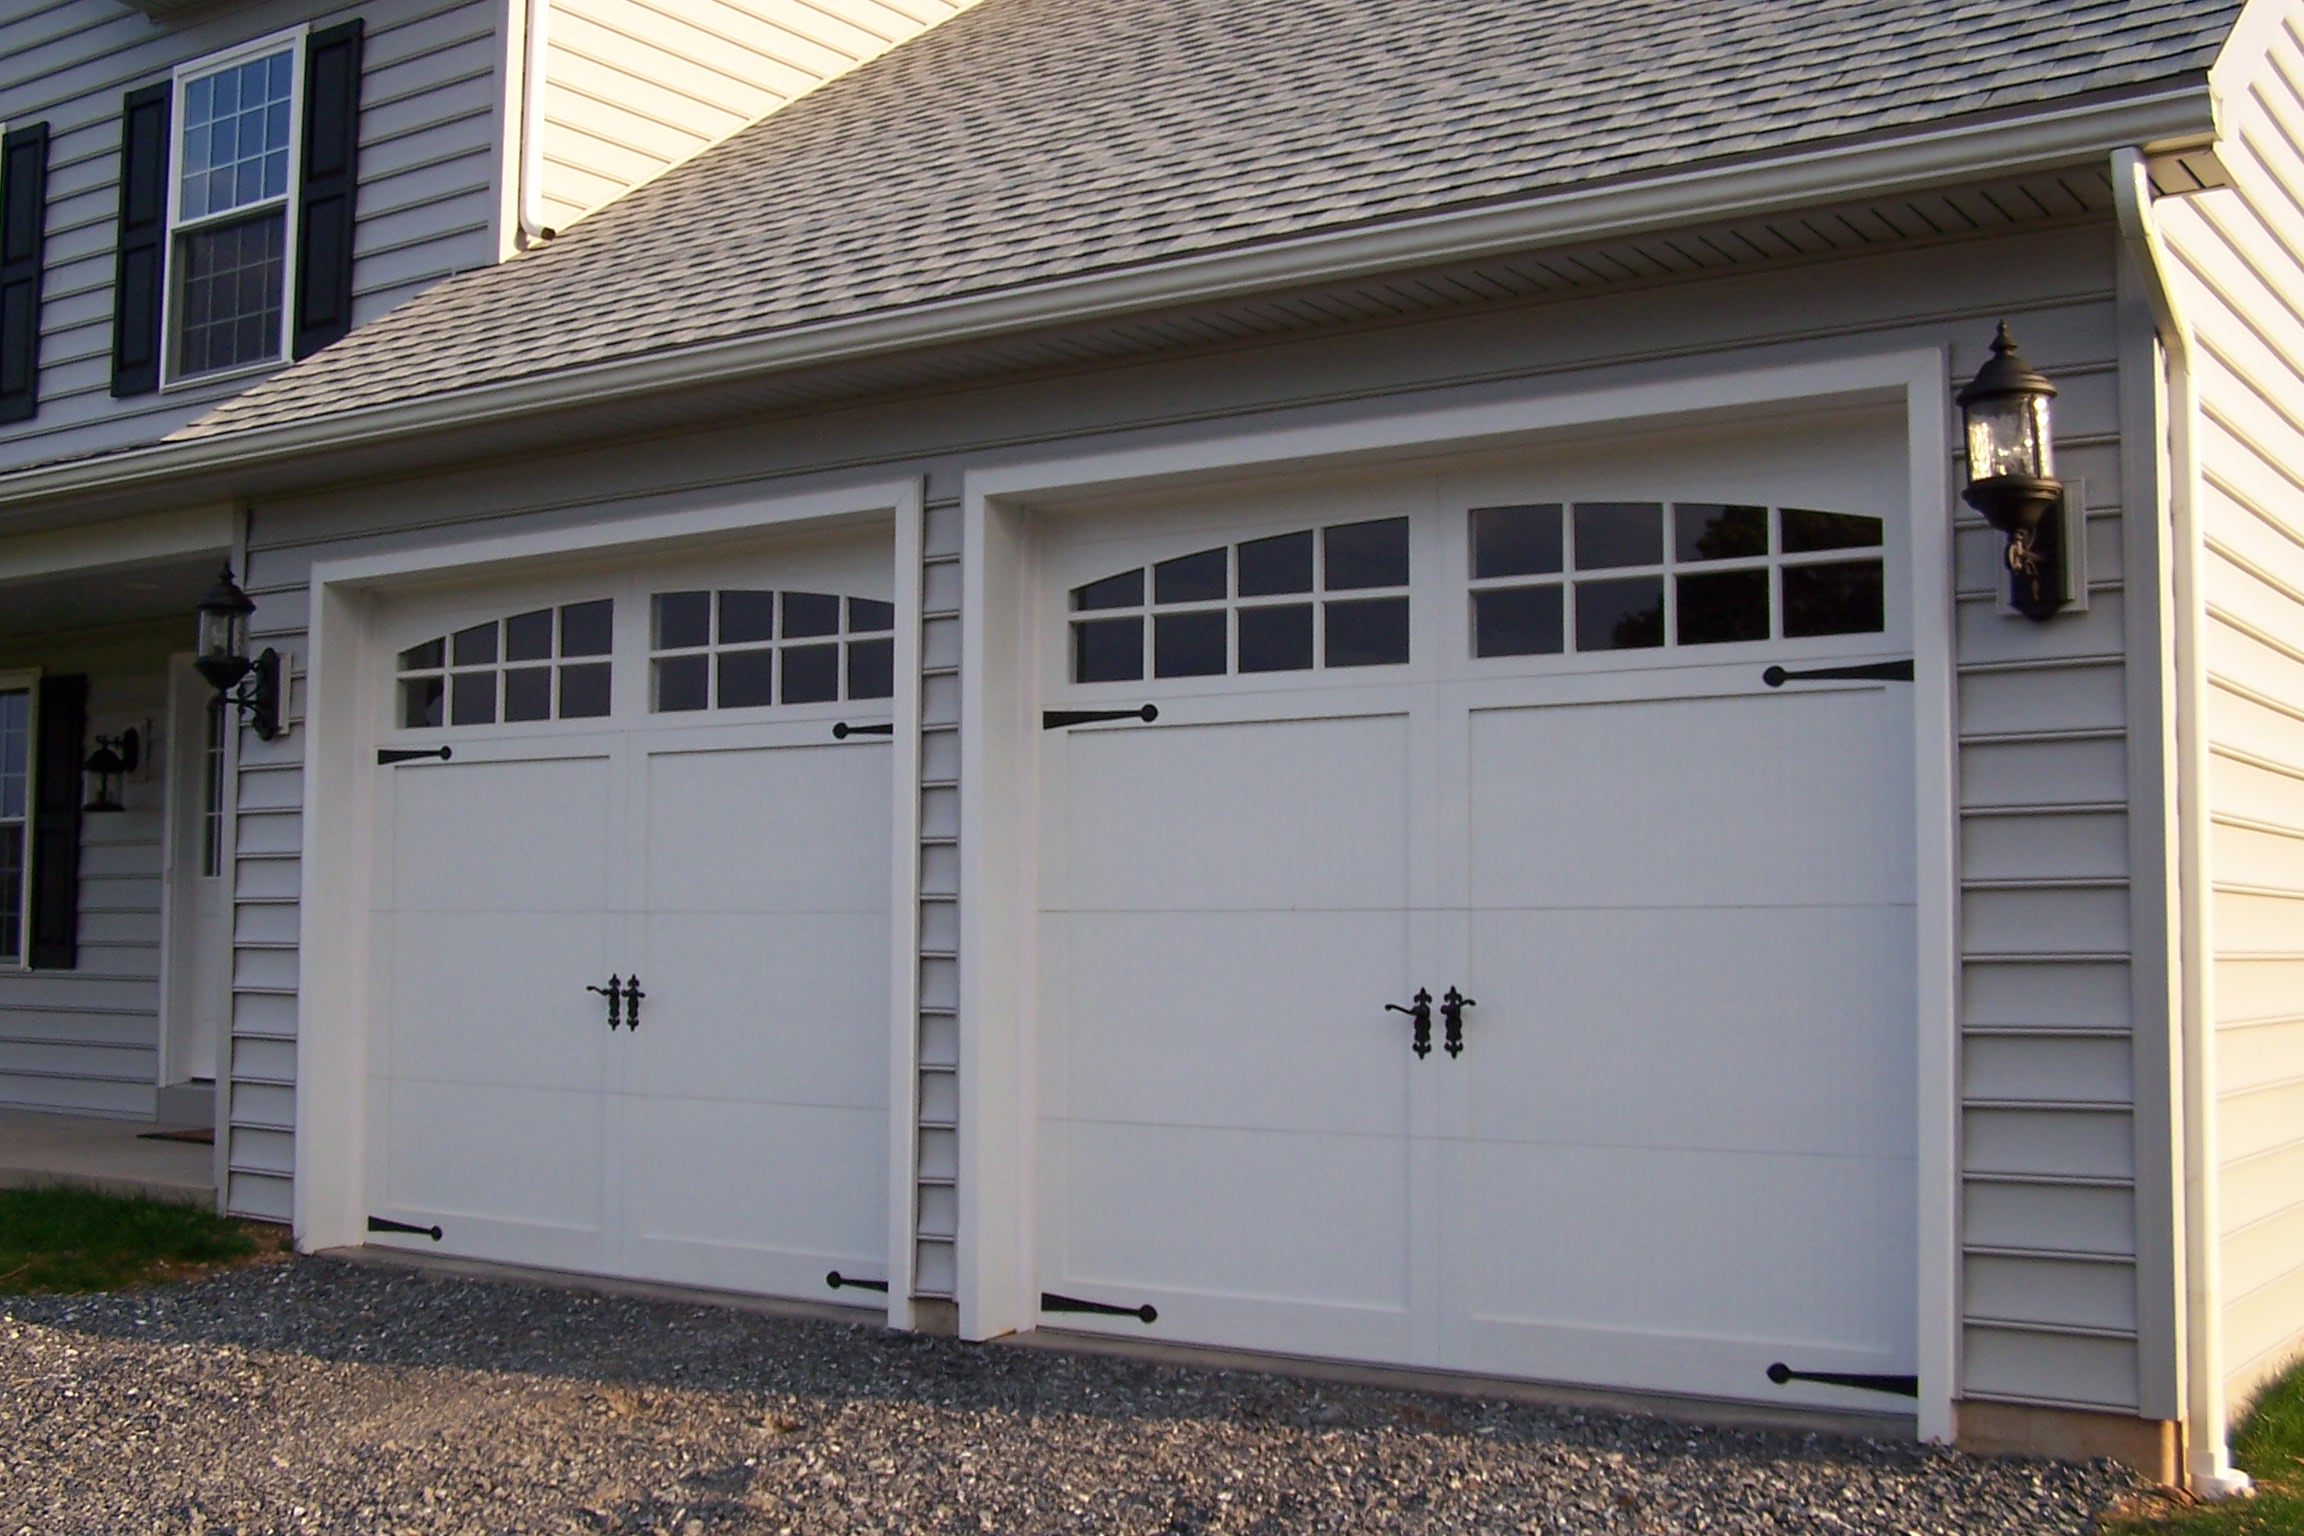 Carriage garage doors - Sectional Type Steel With Exterior Cladding Overhead Garage Doors In The Style Of Old Carriage House Doors